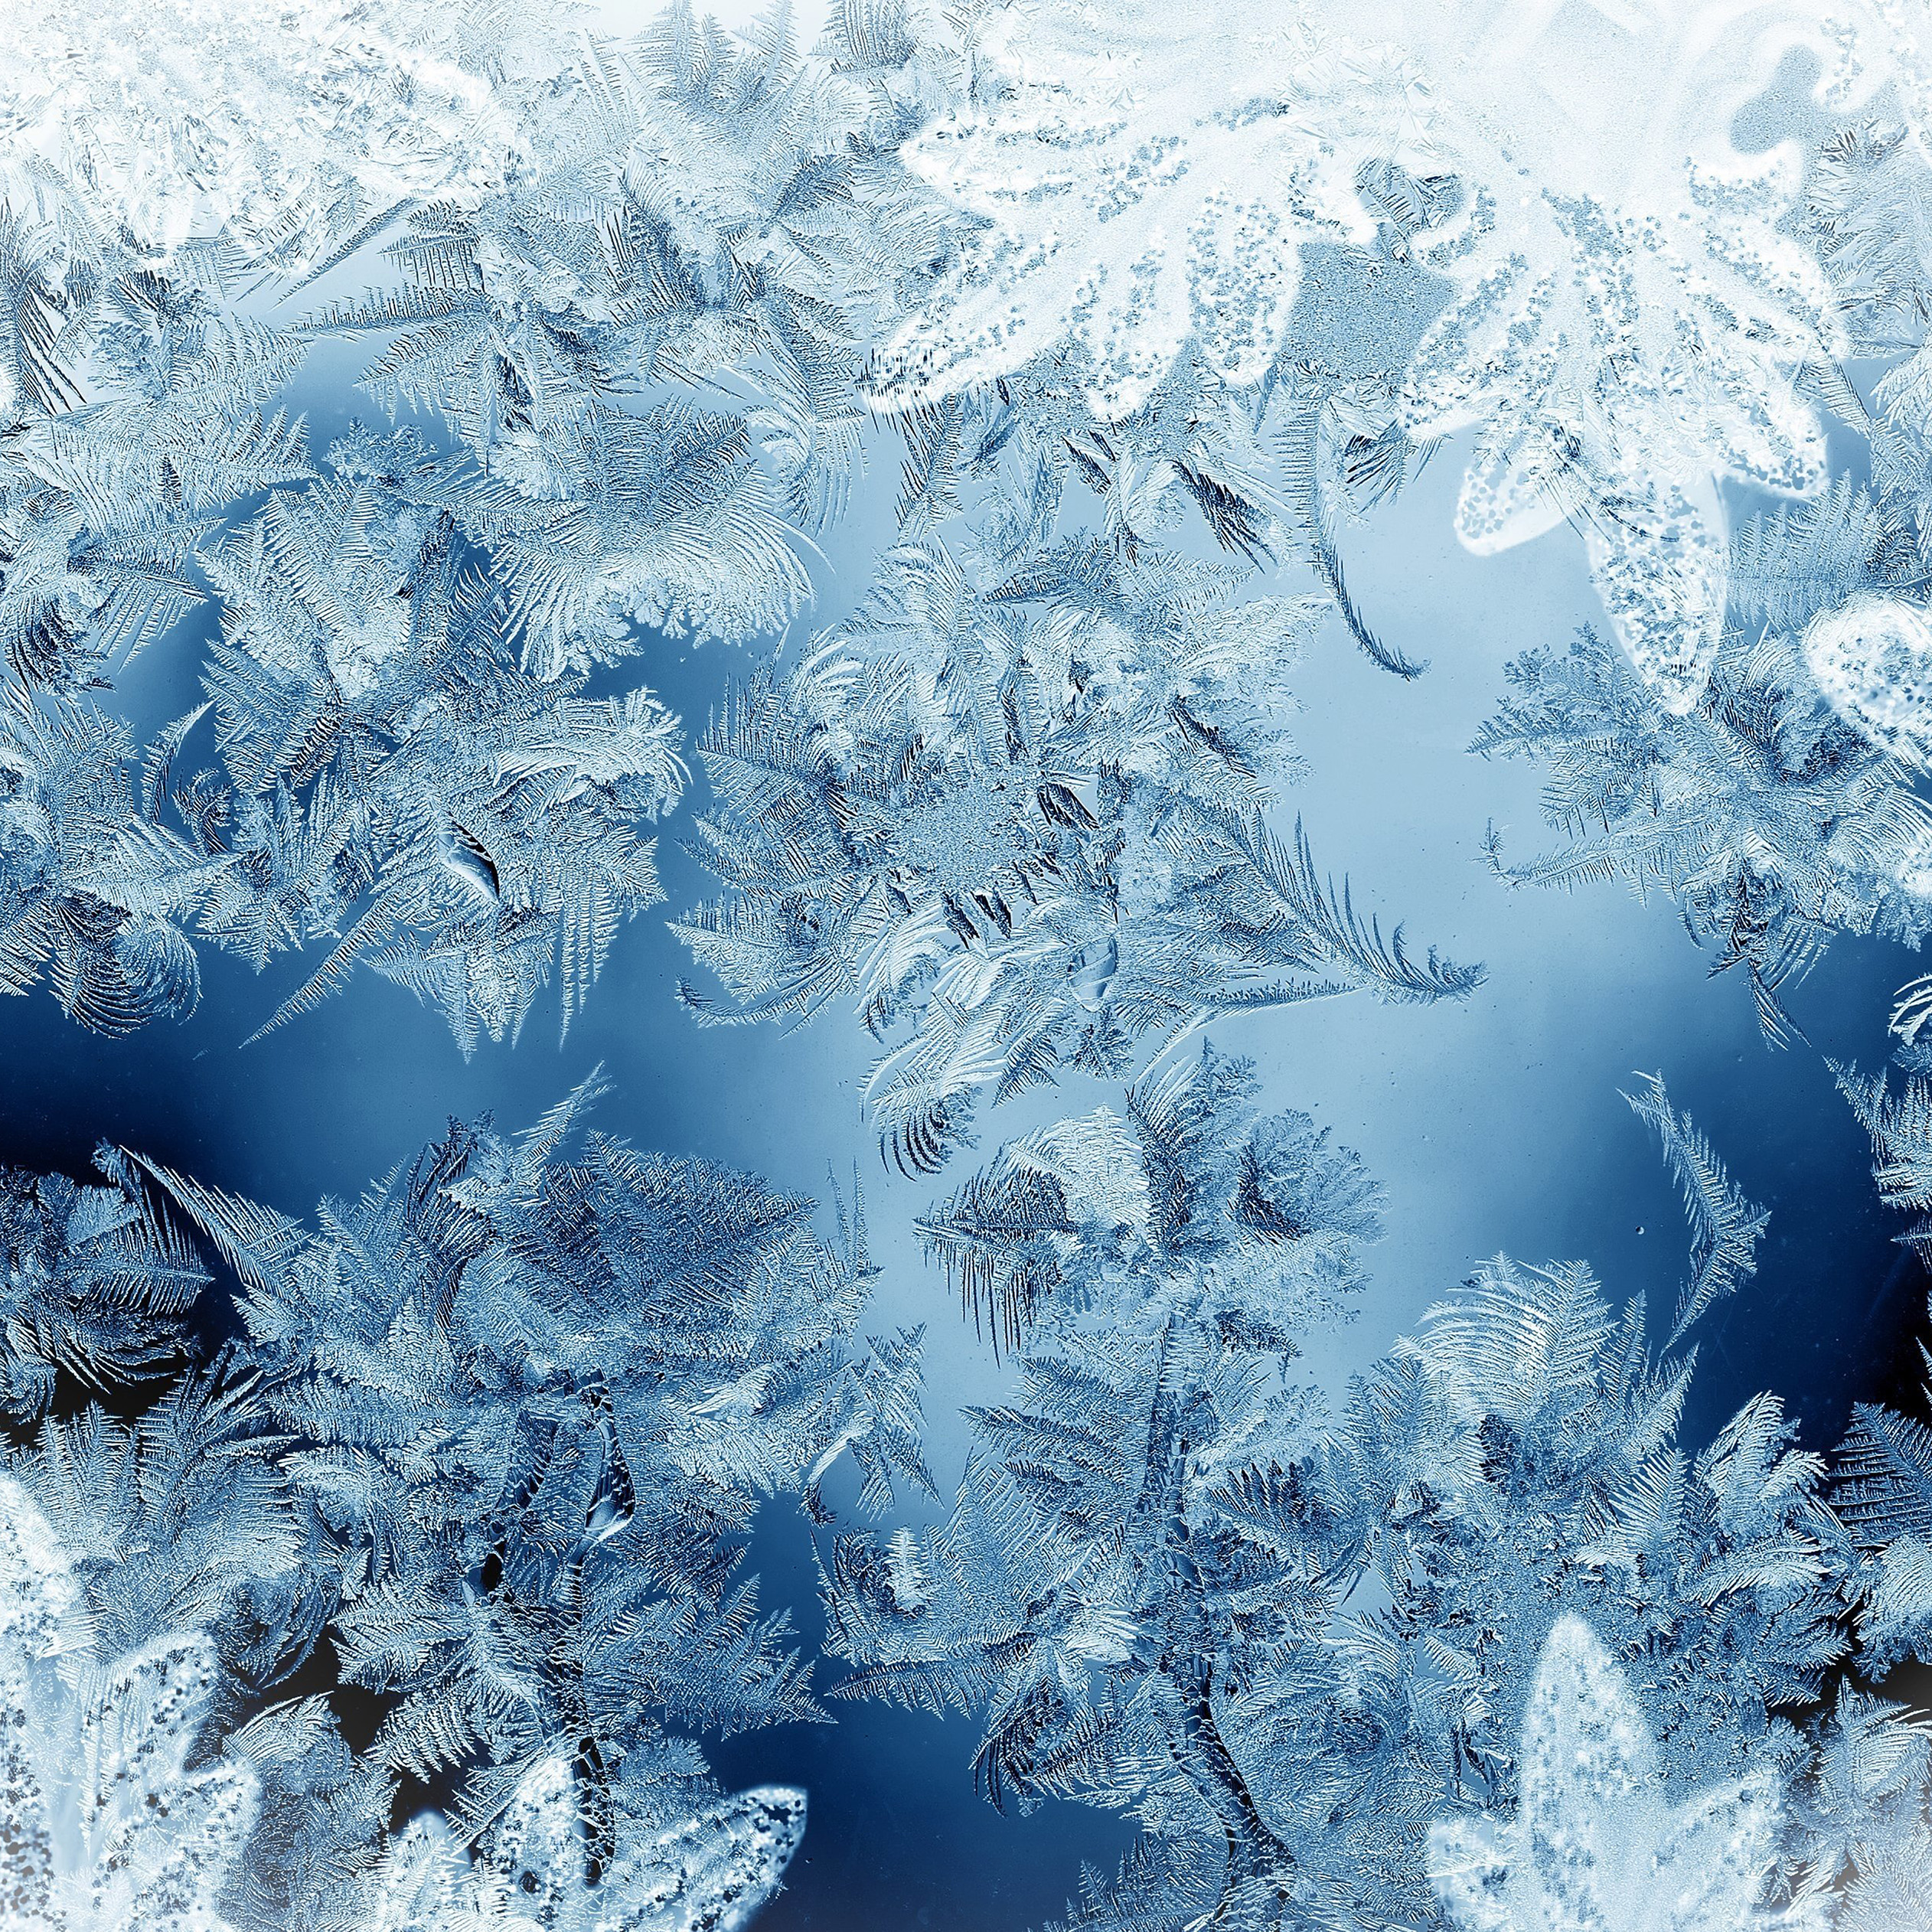 ice-pattern-blue-snow-nauture-christmas-9-wallpaper